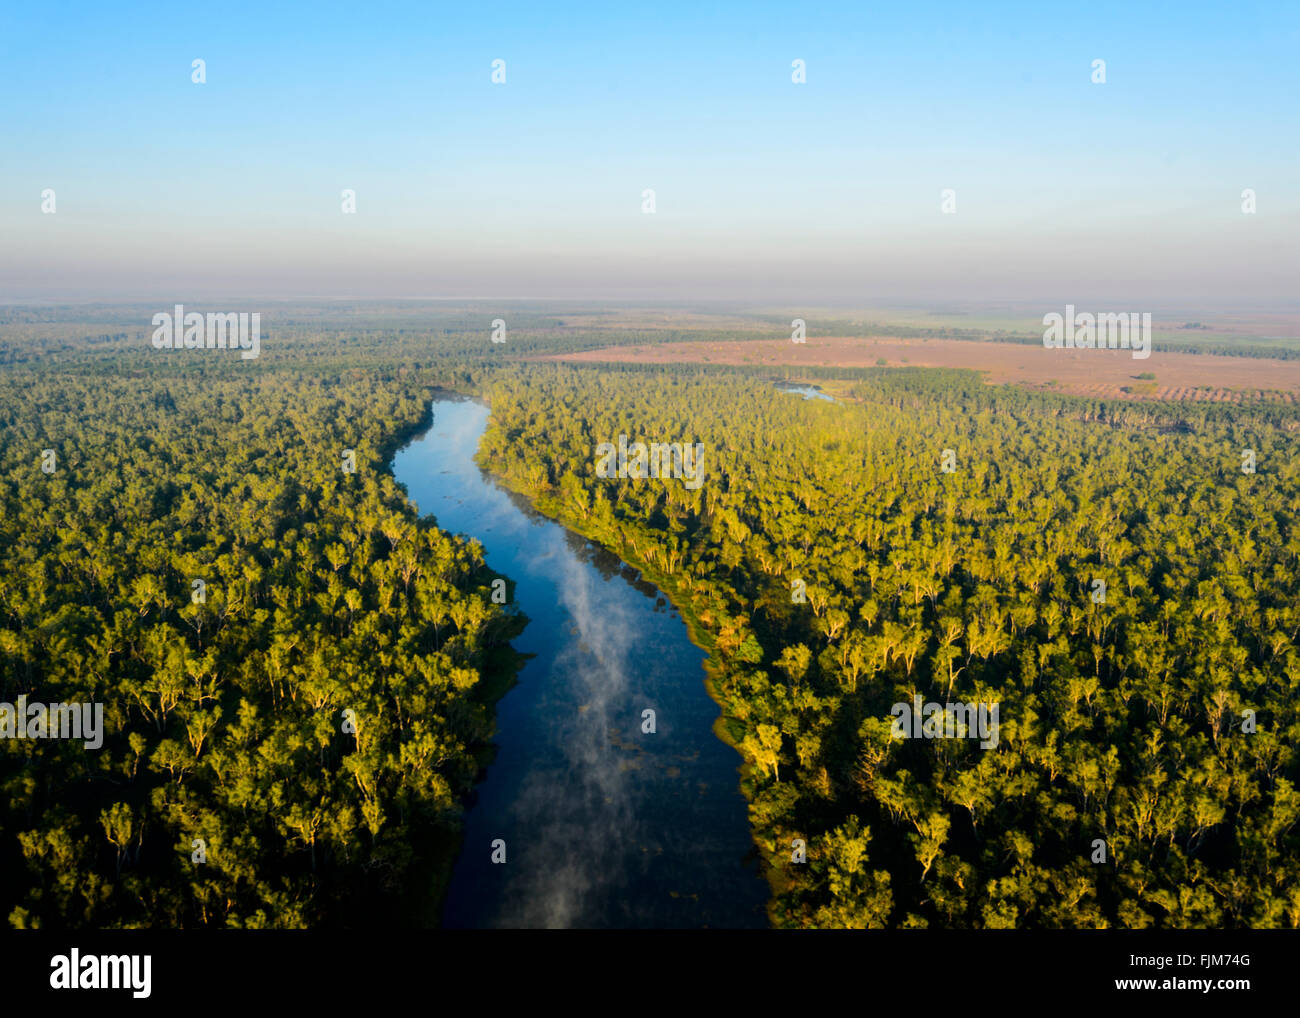 Aerial view of the Landscape near Darwin, Northern Territory, Australia - Stock Image